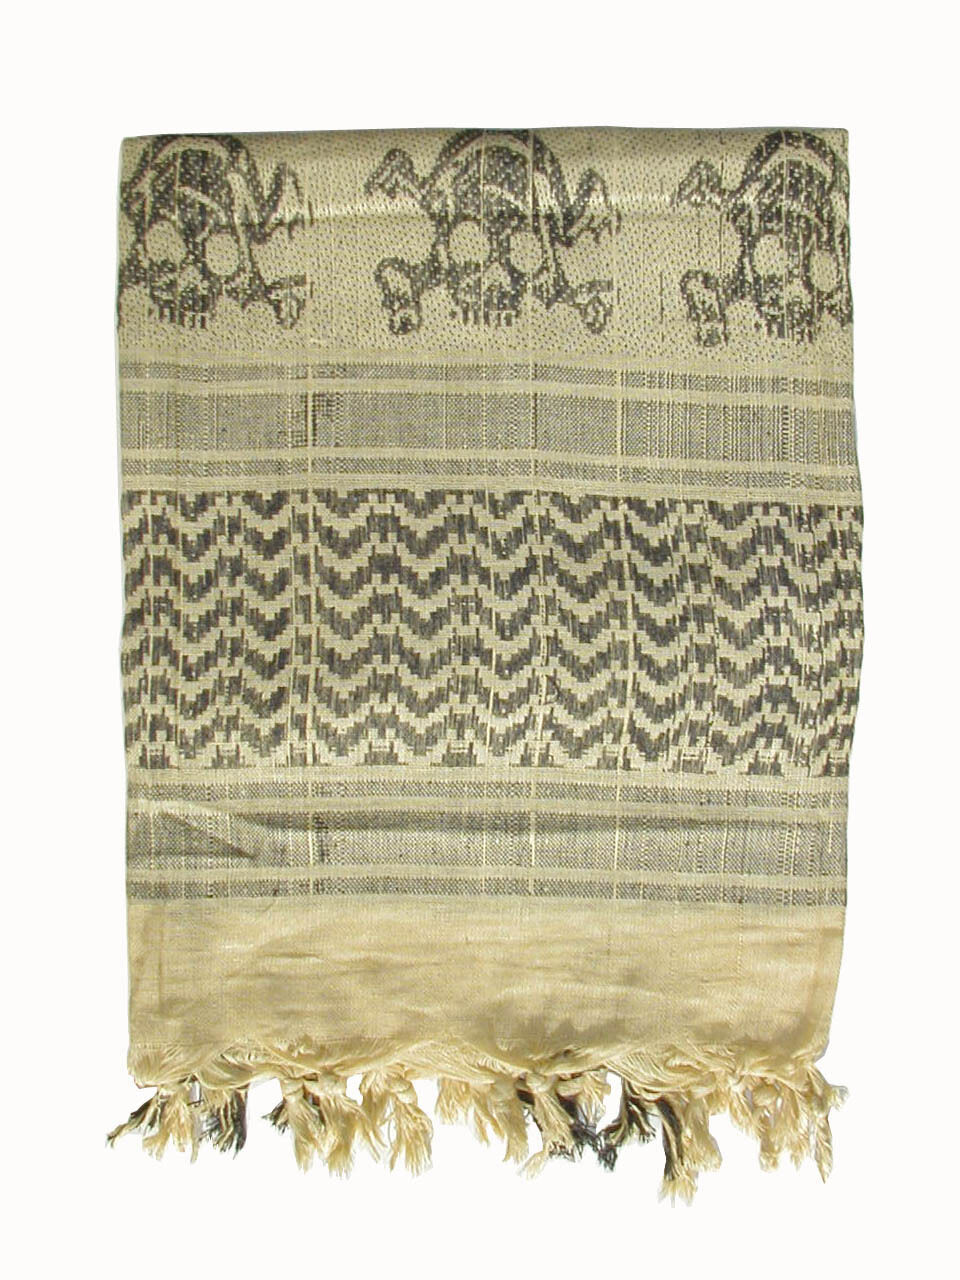 Army Military SAS Retro Desert Cotton Shemagh Aran Scarf with Skulls